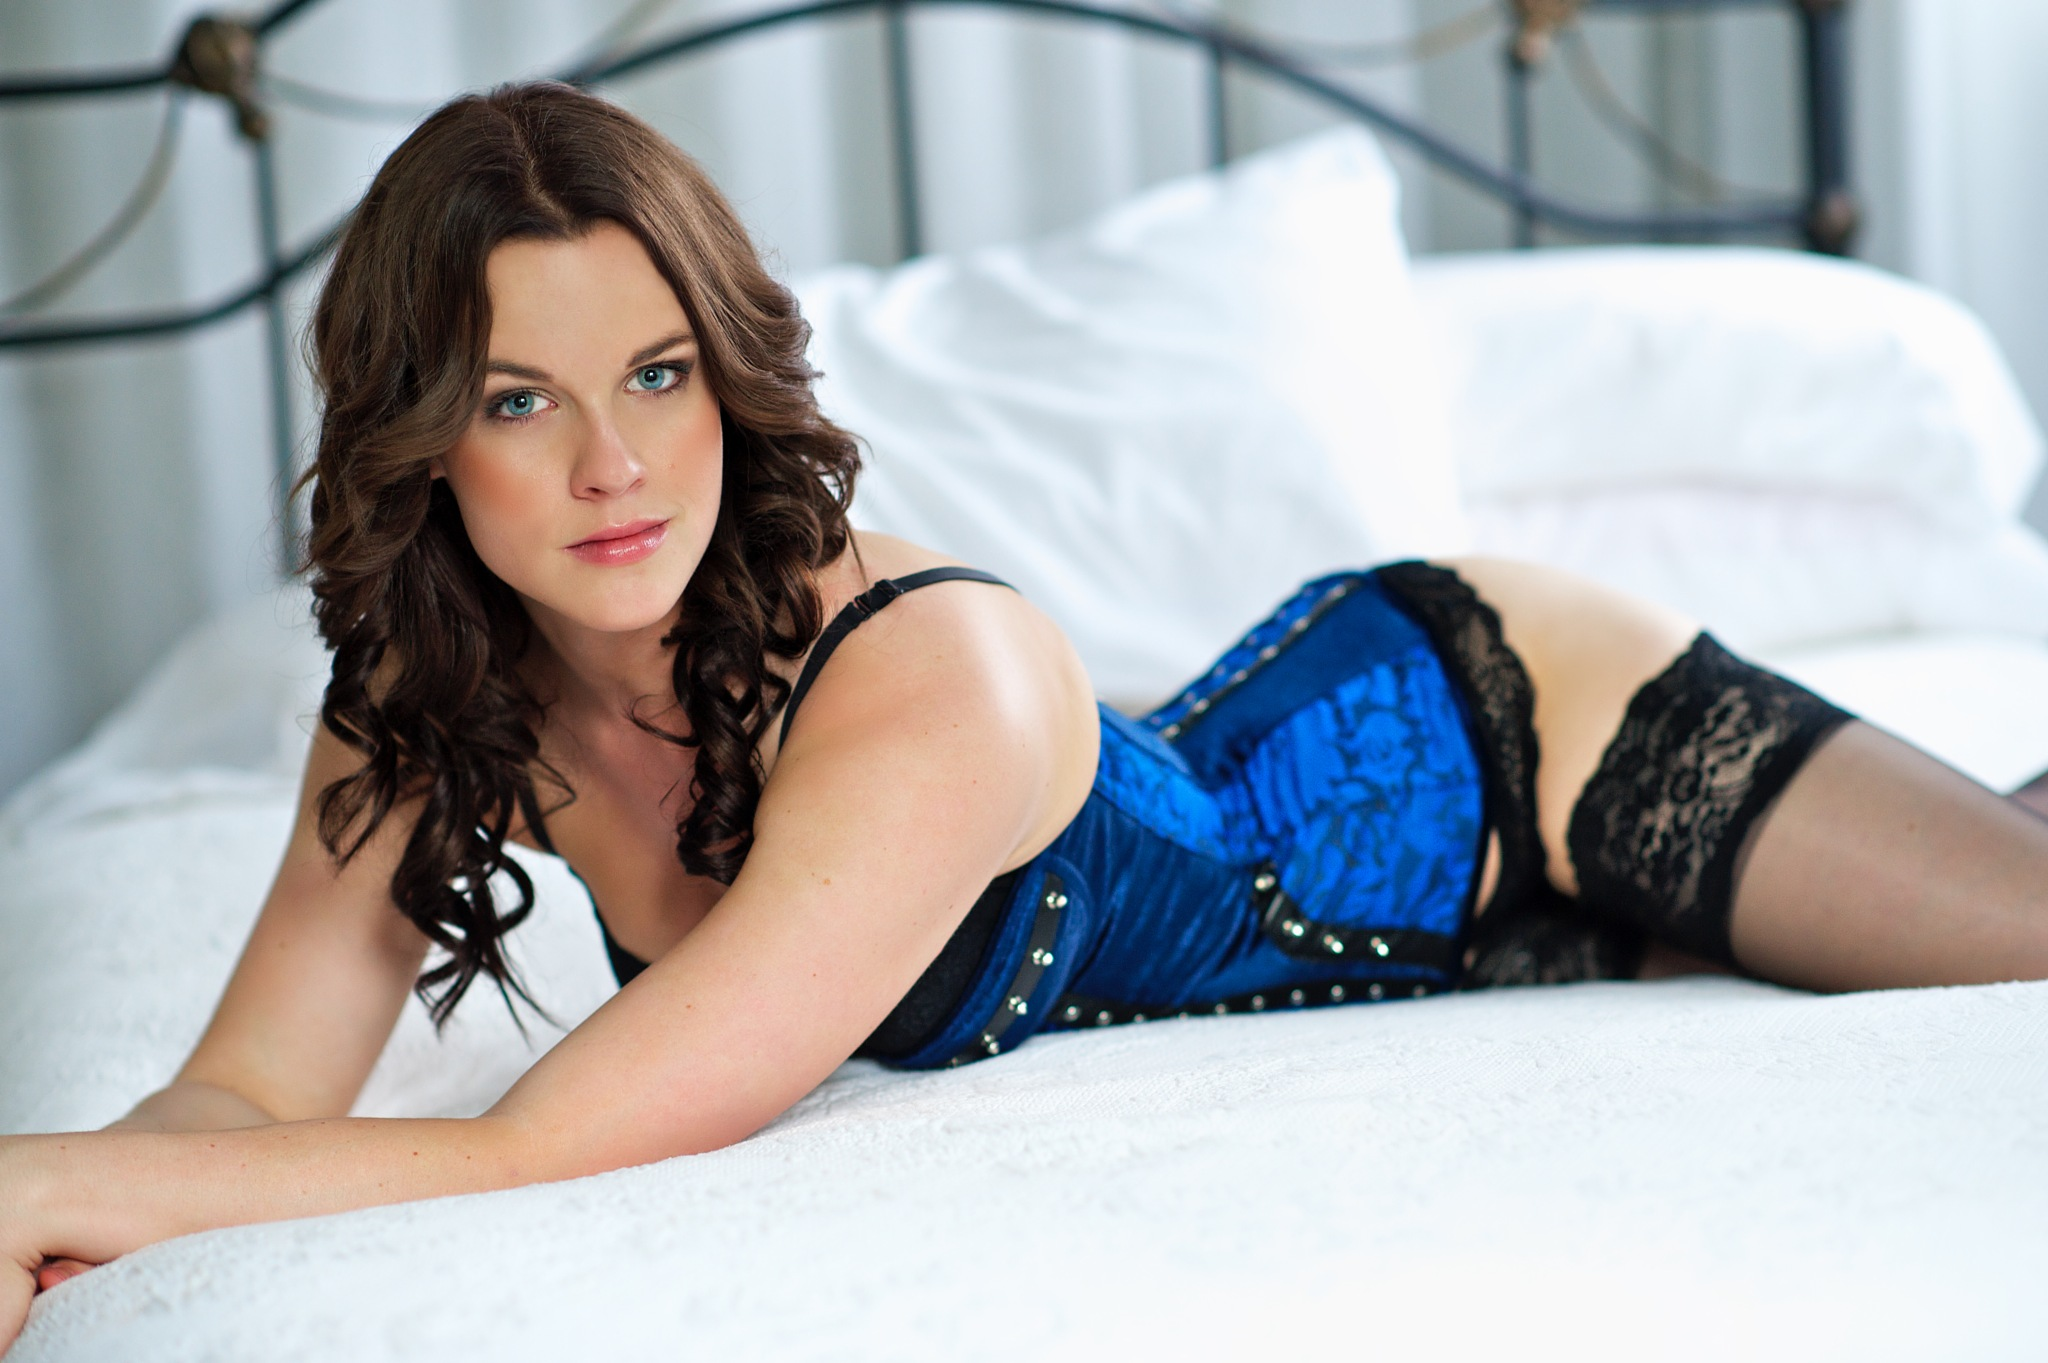 Blue Corset by Valley Images Photography - Craig Andrews